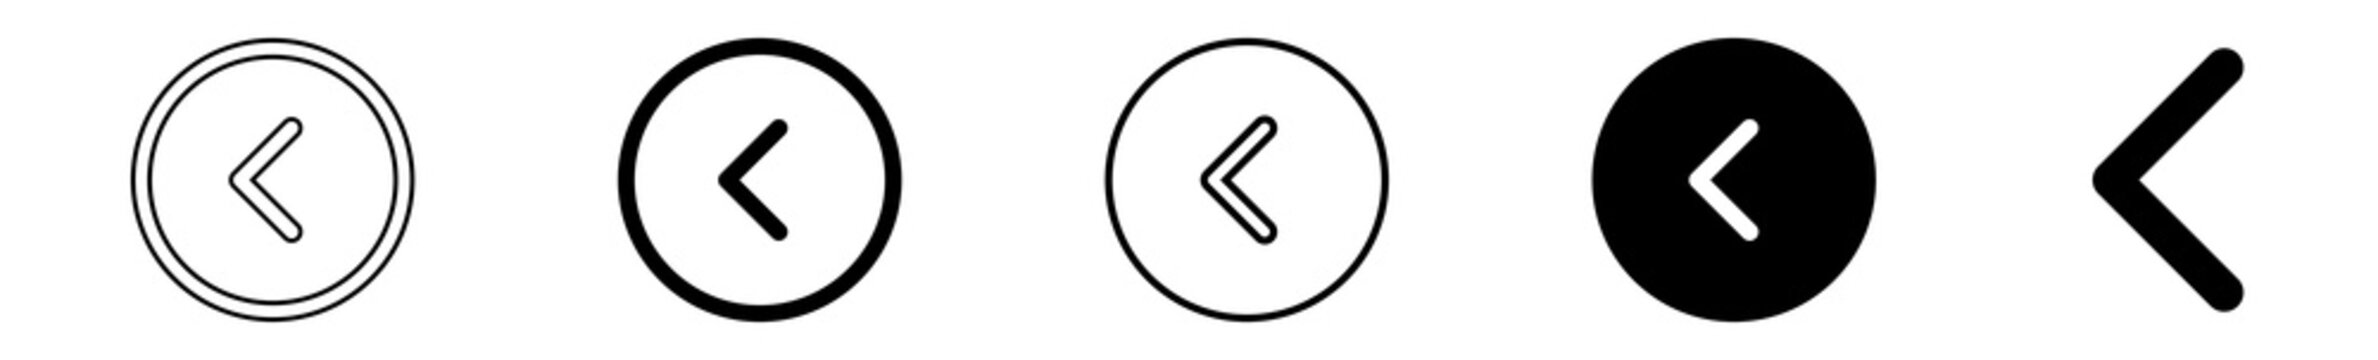 Back Button Icon Circle Black   Previous Buttons Illustration   Video Audio Player Navigate Symbol   Left Logo   Game Arrow Sign   Isolated   Variations